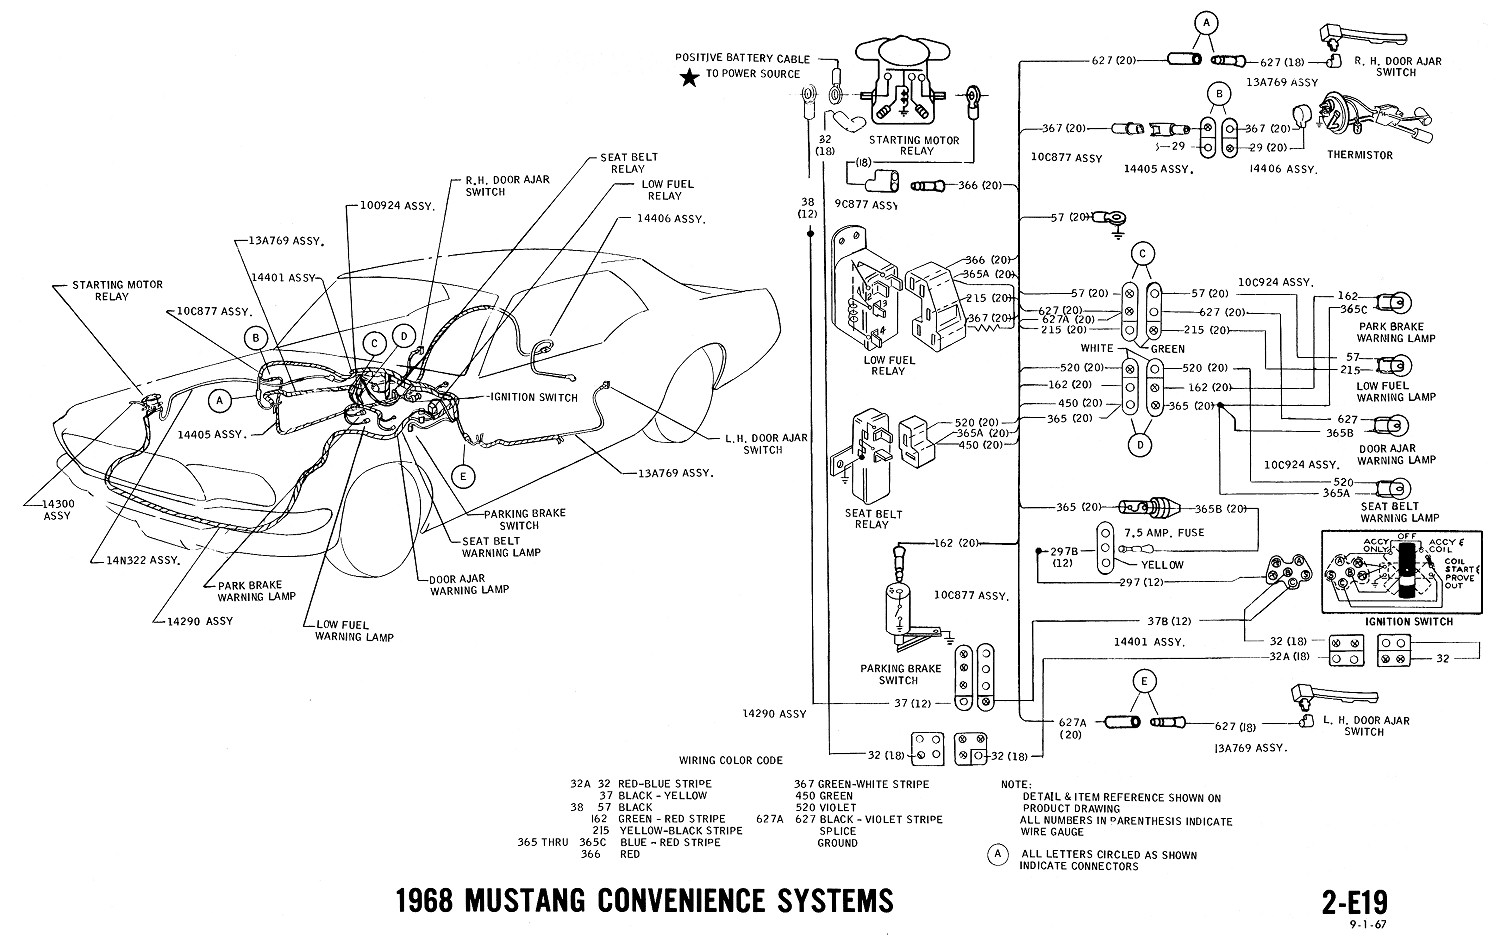 1969 ford mustang wiring harness automotive wiring diagram u2022 rh nfluencer co Wiring Diagram for 1984 Ford Mustang 1970 Mach 1 Wiring Diagram